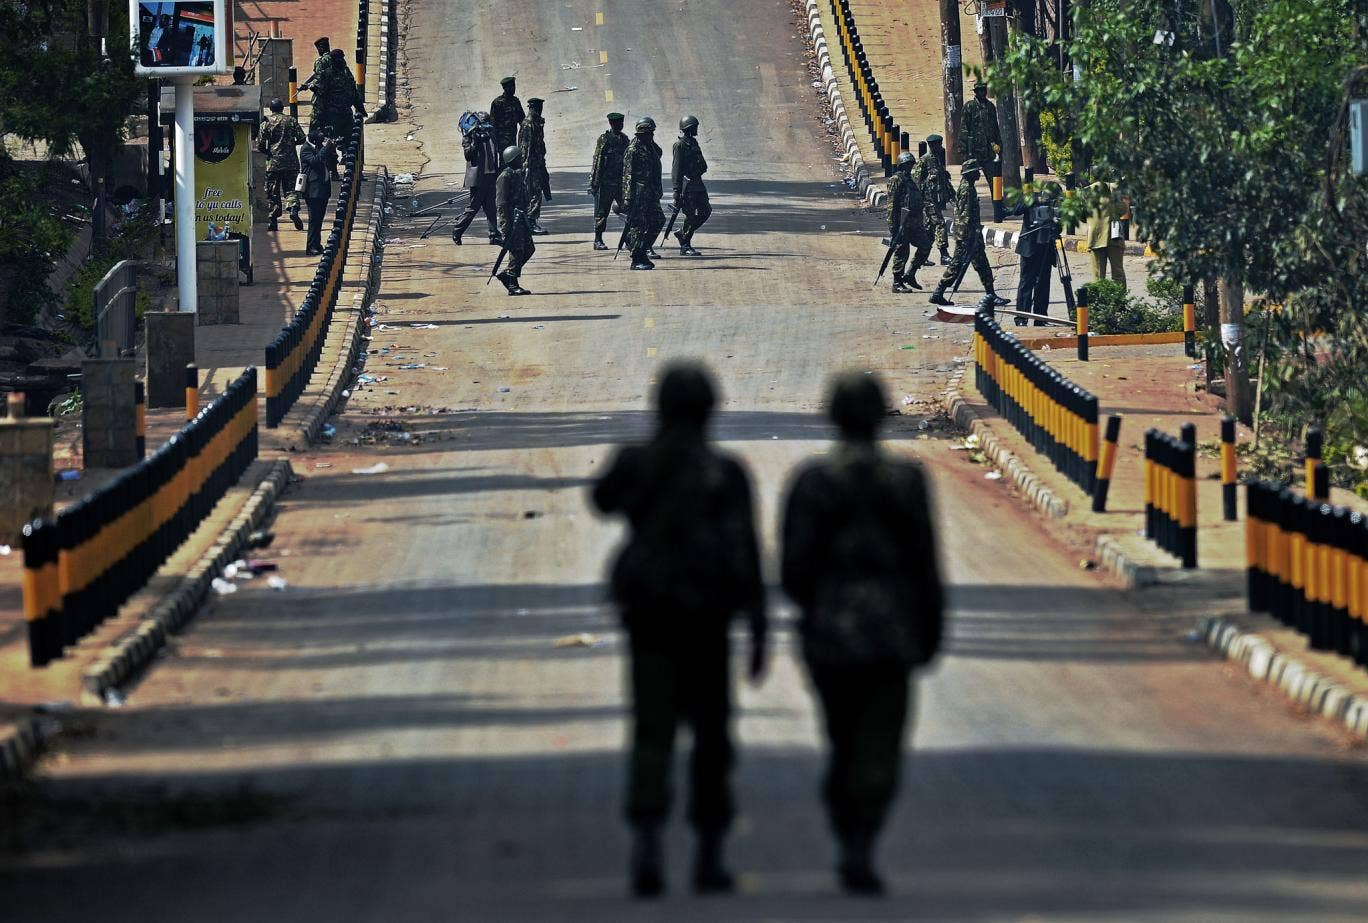 Kenyan soldiers walk on the road outside the Westgate shopping mall in Nairobi, which was attacked by al Shabaab militants last September, leaving 67 people dead. Kenya has blamed the al-Qa'ida-linked Somali group for a string of further attacks in the co